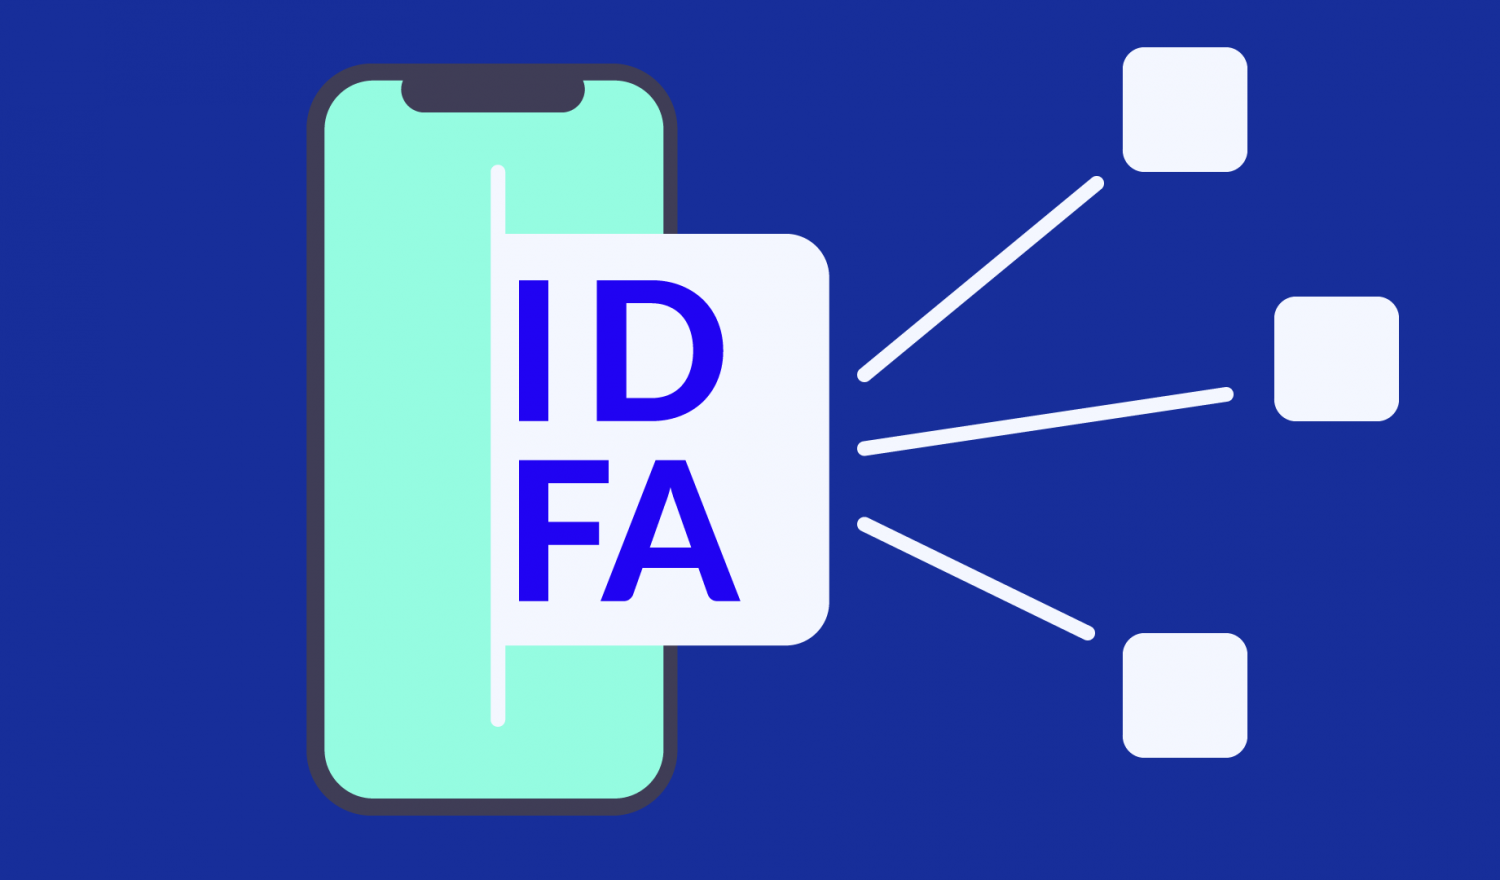 A user IDFA emerging from an iPhone